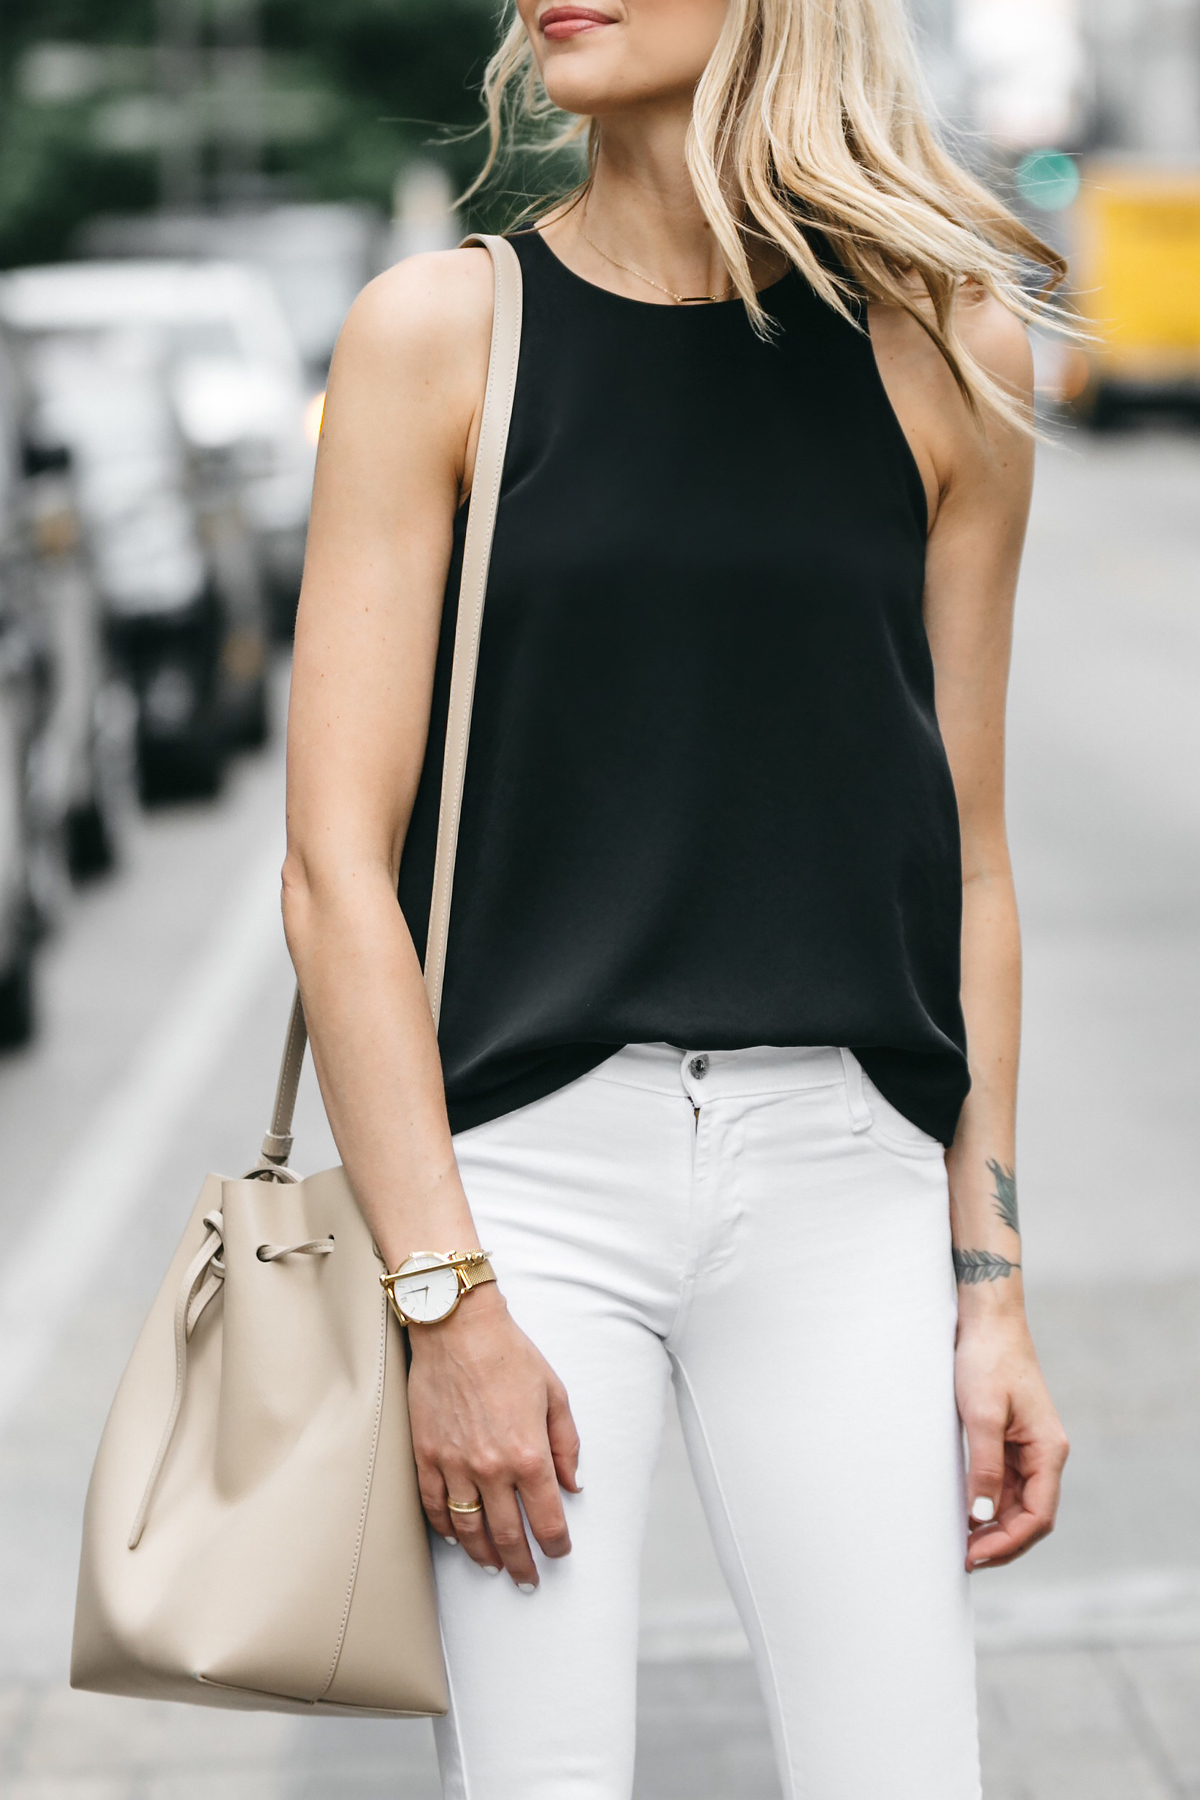 Fashion Jackson, Dallas Blogger, Fashion Blogger, Street Style, Everlane Black Tank, White Skinny Jeans, Mansur Gavriel Bucket Bag, Aquazzura Sexy Thang Heels